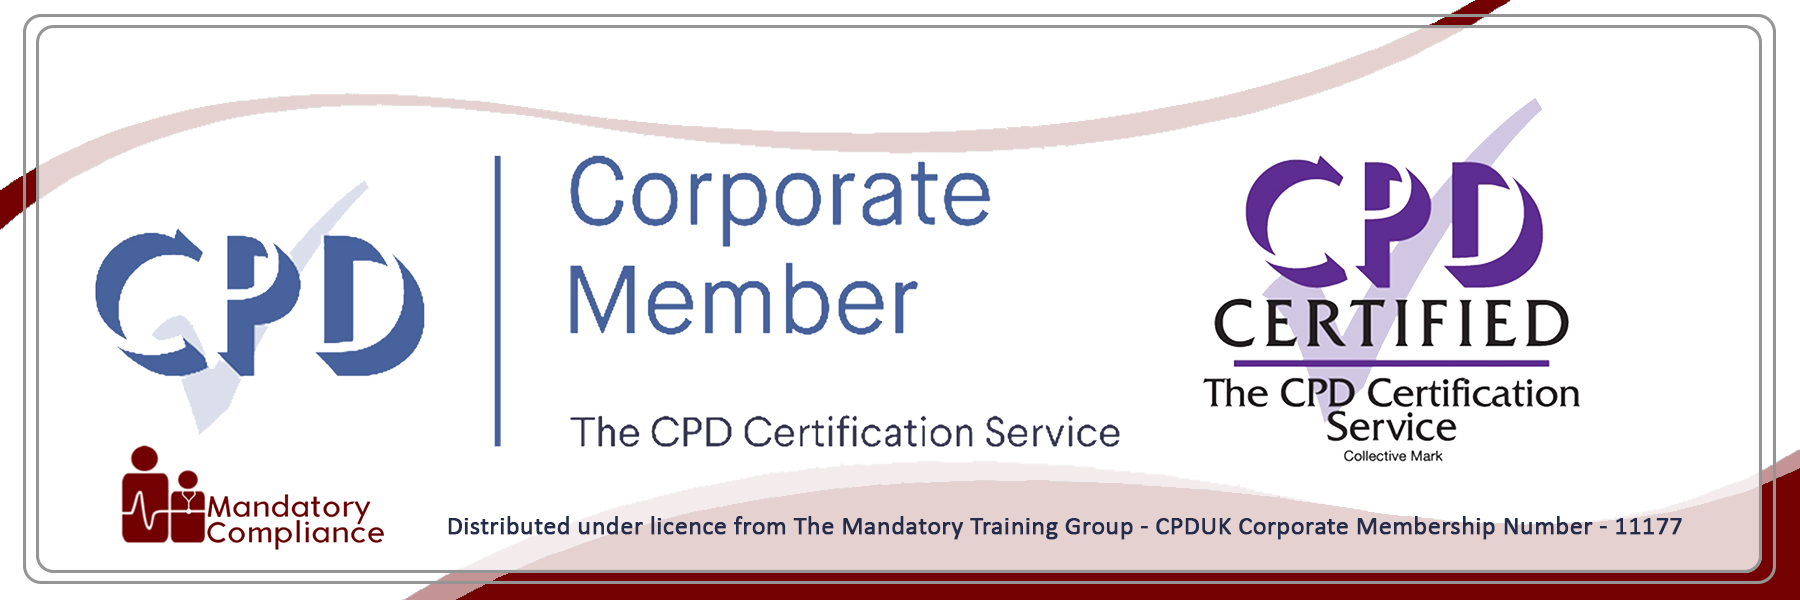 In-Person Sales Training - Online Training Course - CPD Accredited - Mandatory Compliance UK -